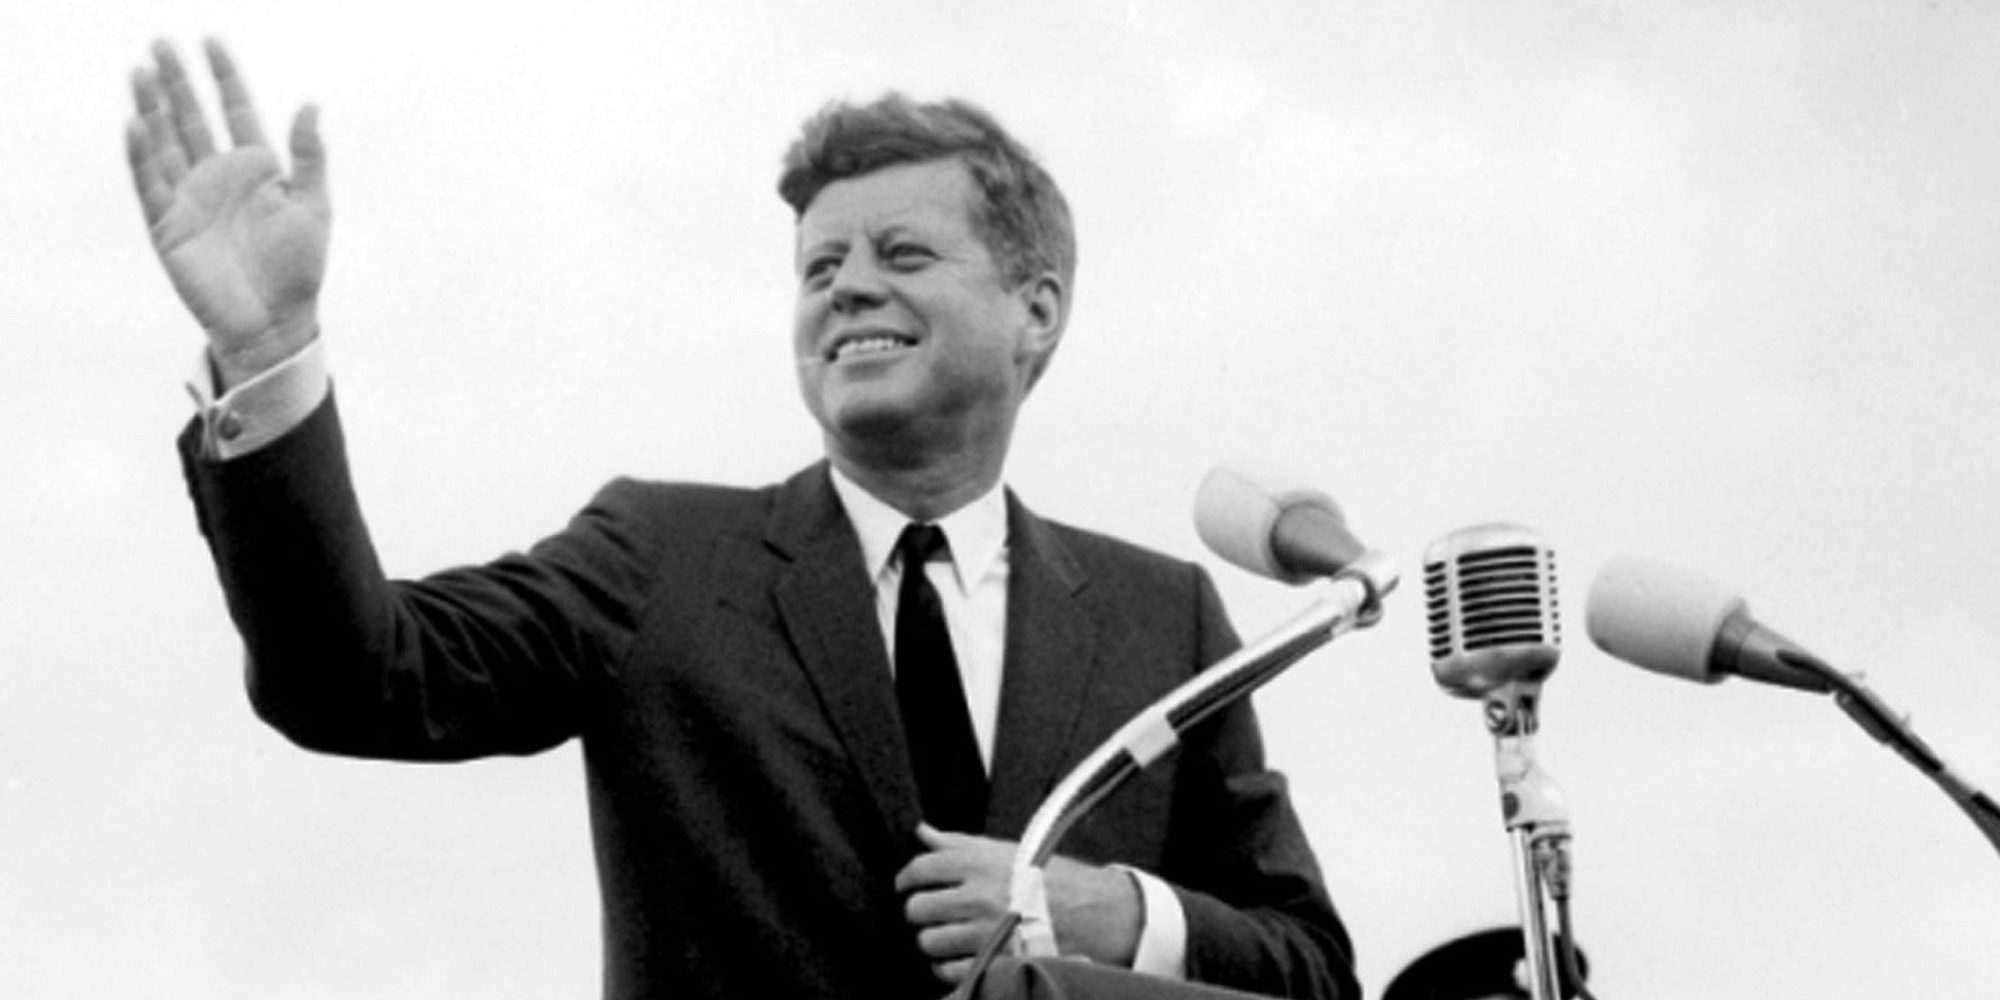 what john f kennedy did for america that makes him a great president Full answer the assassination of john f kennedy is likely the most infamous event associated with him this happened on november 22, 1963 while president kennedy was riding in a motorcade.